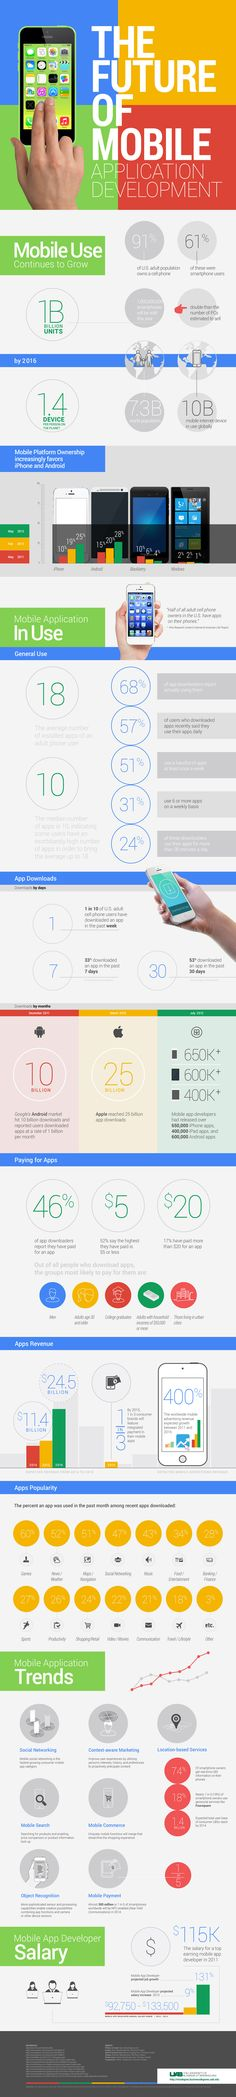 #Mobile #Infographic: The Future is Bright for the Mobile #App Industry